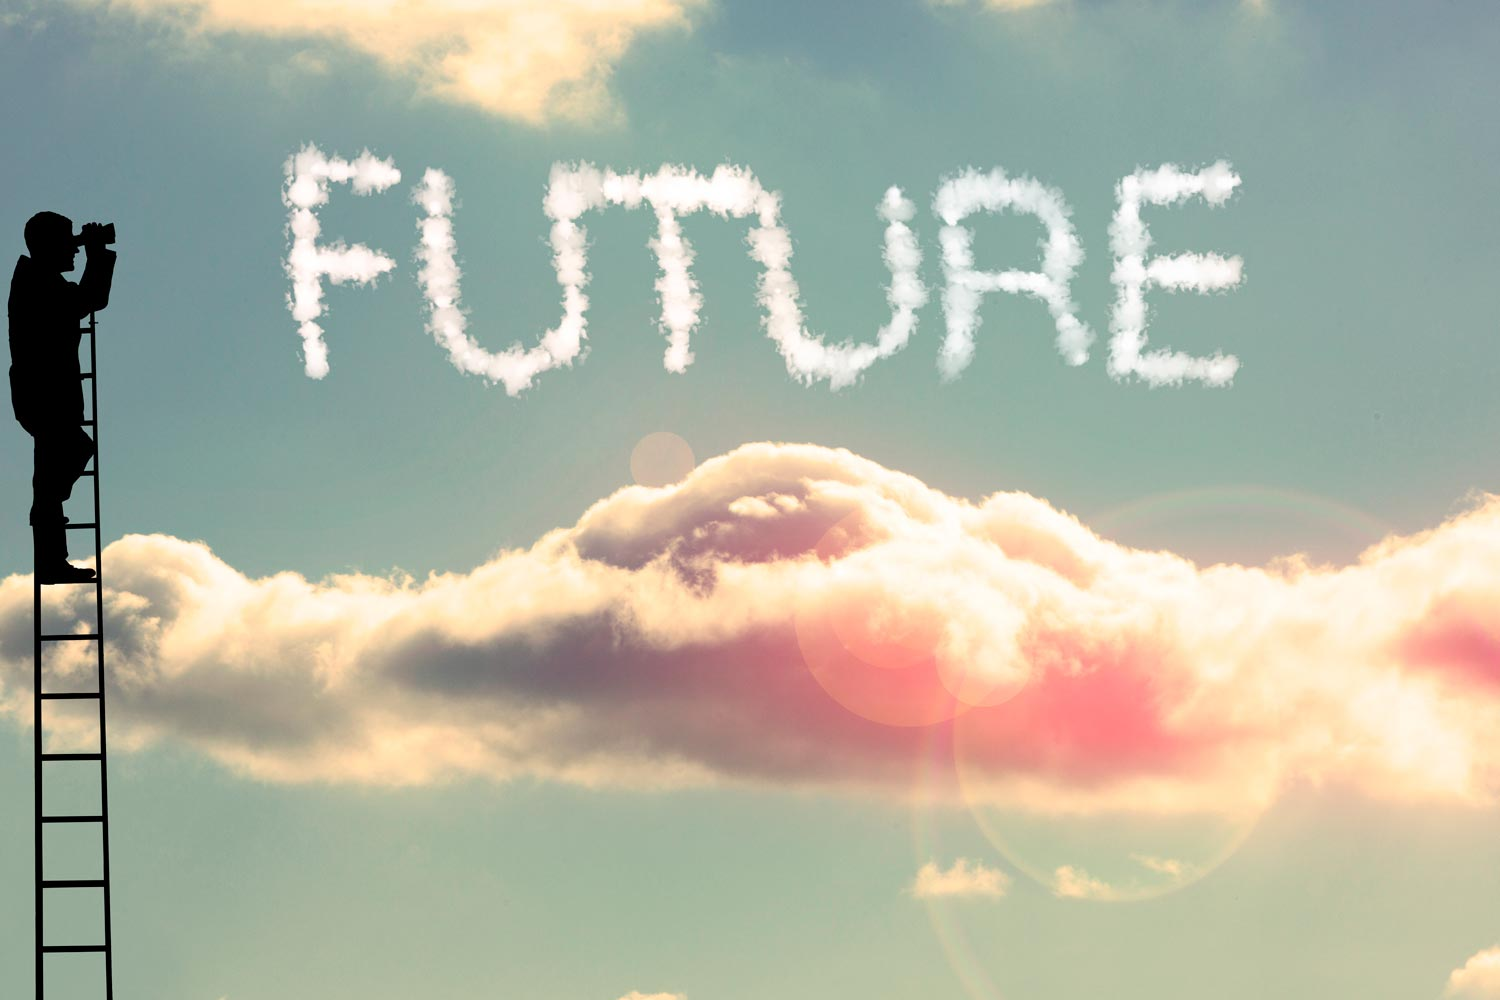 Looking to the Future  - Designed by Creativeart / Freepik